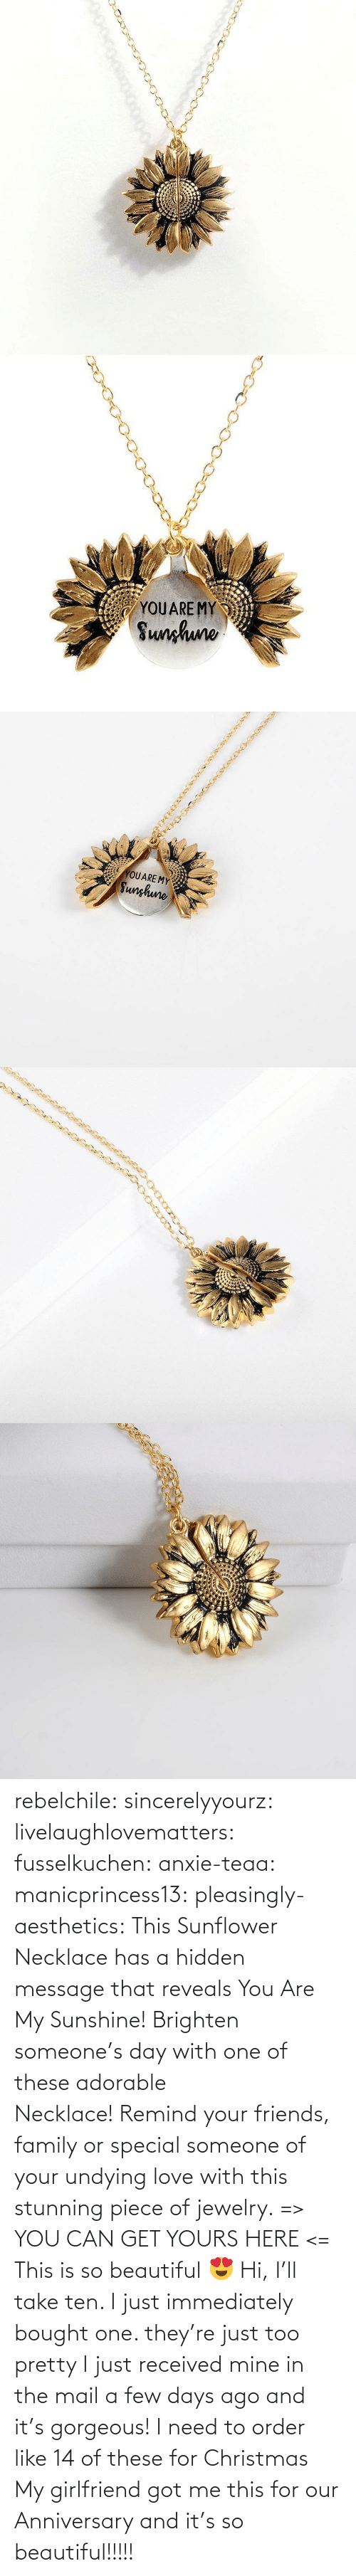 Necklace: YOUARE MY  Sunhuno   YOUARE MY  Sunghune rebelchile:  sincerelyyourz:  livelaughlovematters:  fusselkuchen:  anxie-teaa:   manicprincess13:   pleasingly-aesthetics:  This Sunflower Necklace has a hidden message that reveals You Are My Sunshine! Brighten someone's day with one of these adorable Necklace! Remind your friends, family or special someone of your undying love with this stunning piece of jewelry. => YOU CAN GET YOURS HERE <=   This is so beautiful 😍    Hi, I'll take ten.    I just immediately bought one. they're just too pretty   I just received mine in the mail a few days ago and it's gorgeous!   I need to order like 14 of these for Christmas    My girlfriend got me this for our Anniversary and it's so beautiful!!!!!